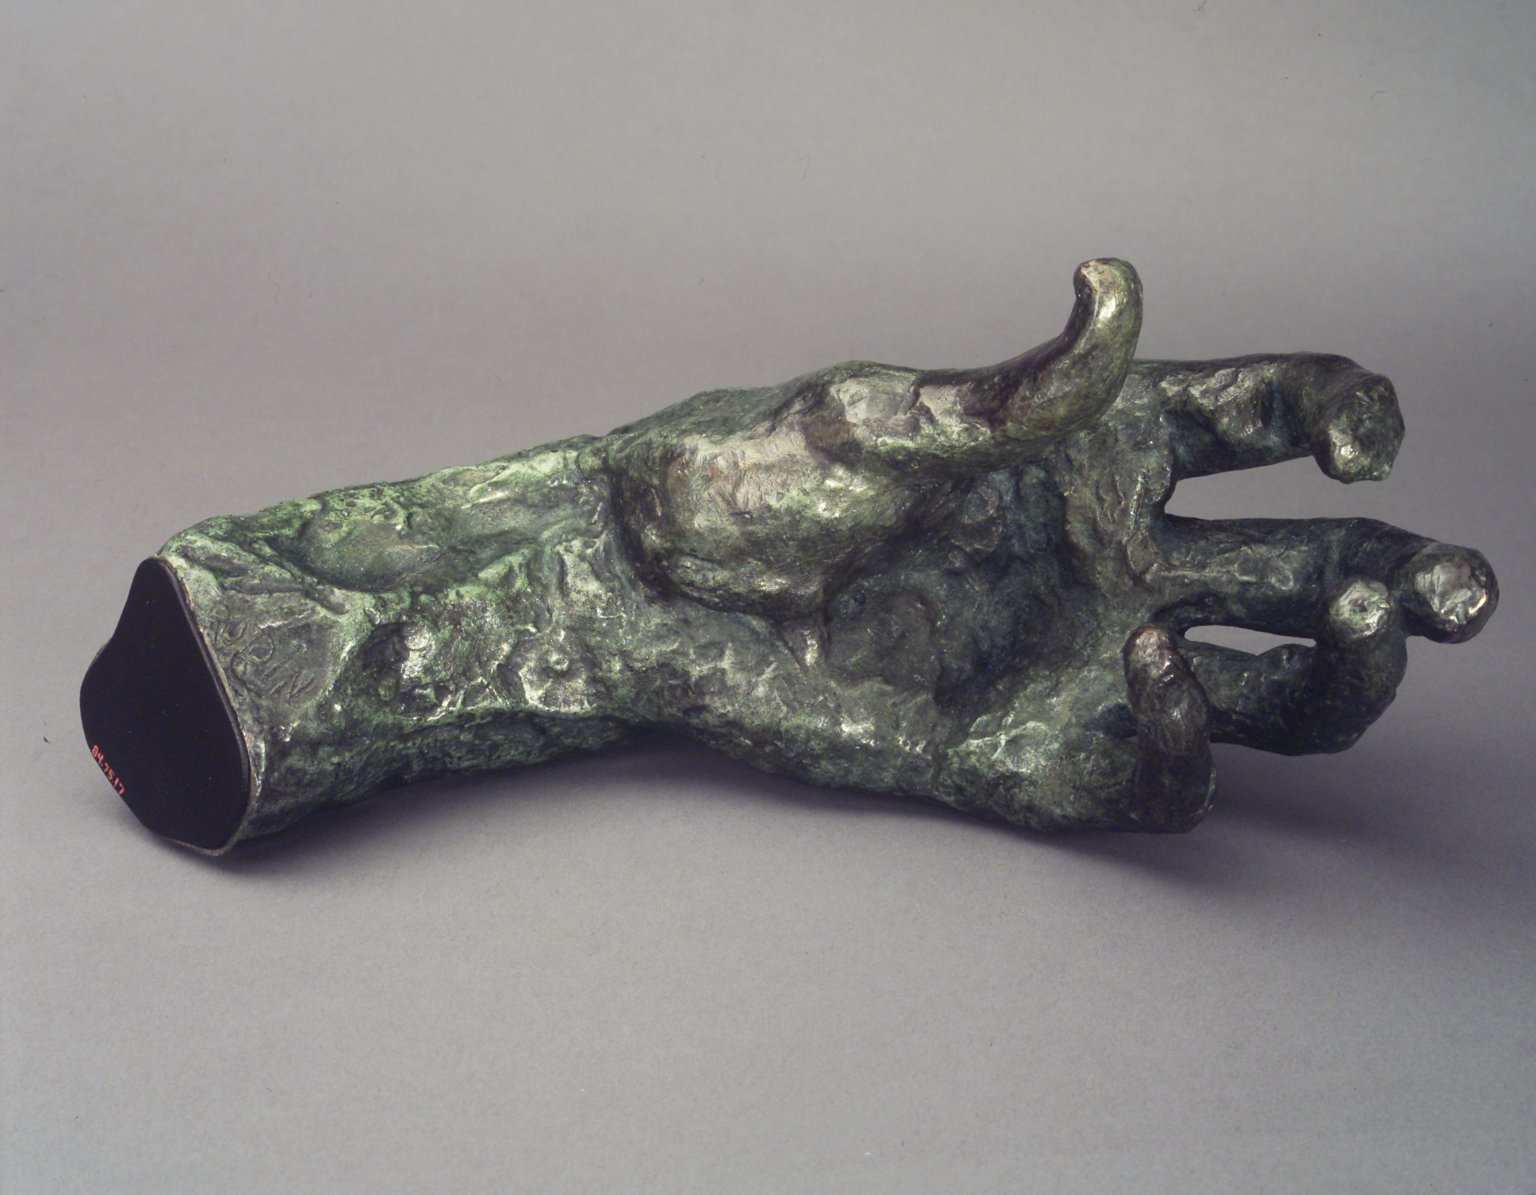 Brooklyn Museum: Large Left Hand (Grande main gauche)